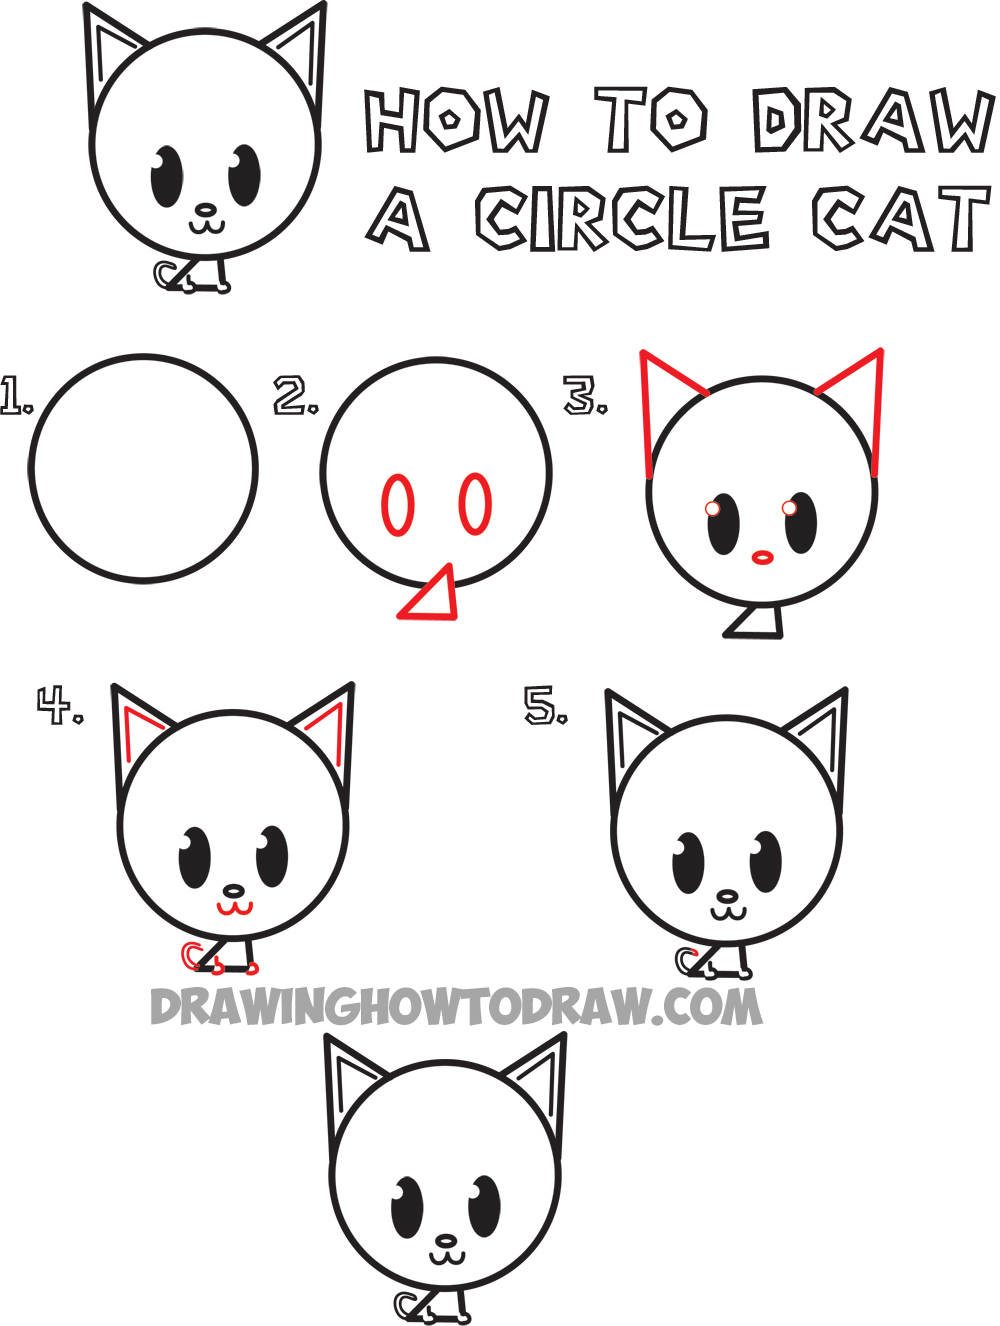 Pleasant Big Guide To Drawing Cute Circle Animals Easy Step By Step Drawing Hairstyles For Women Draintrainus